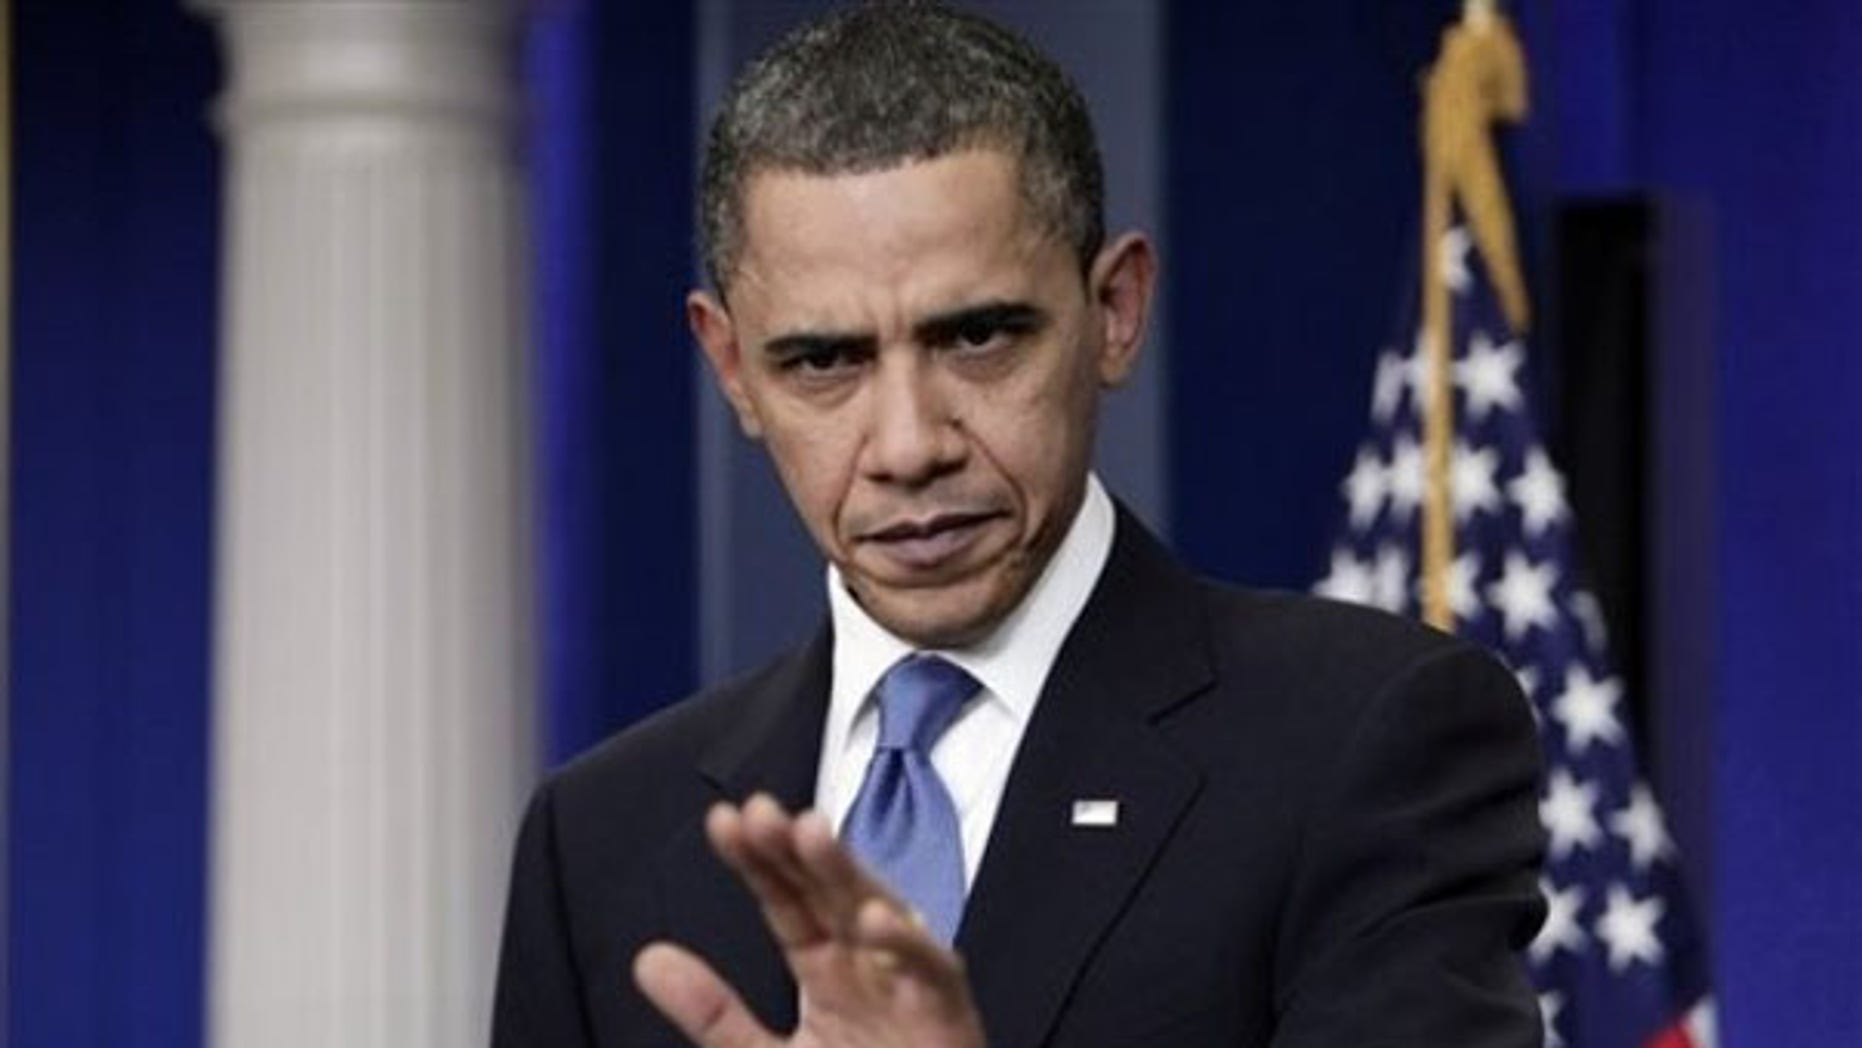 Feb. 9, 2009: President Obama gestures during his first press conference in the White House. (AP Photo)